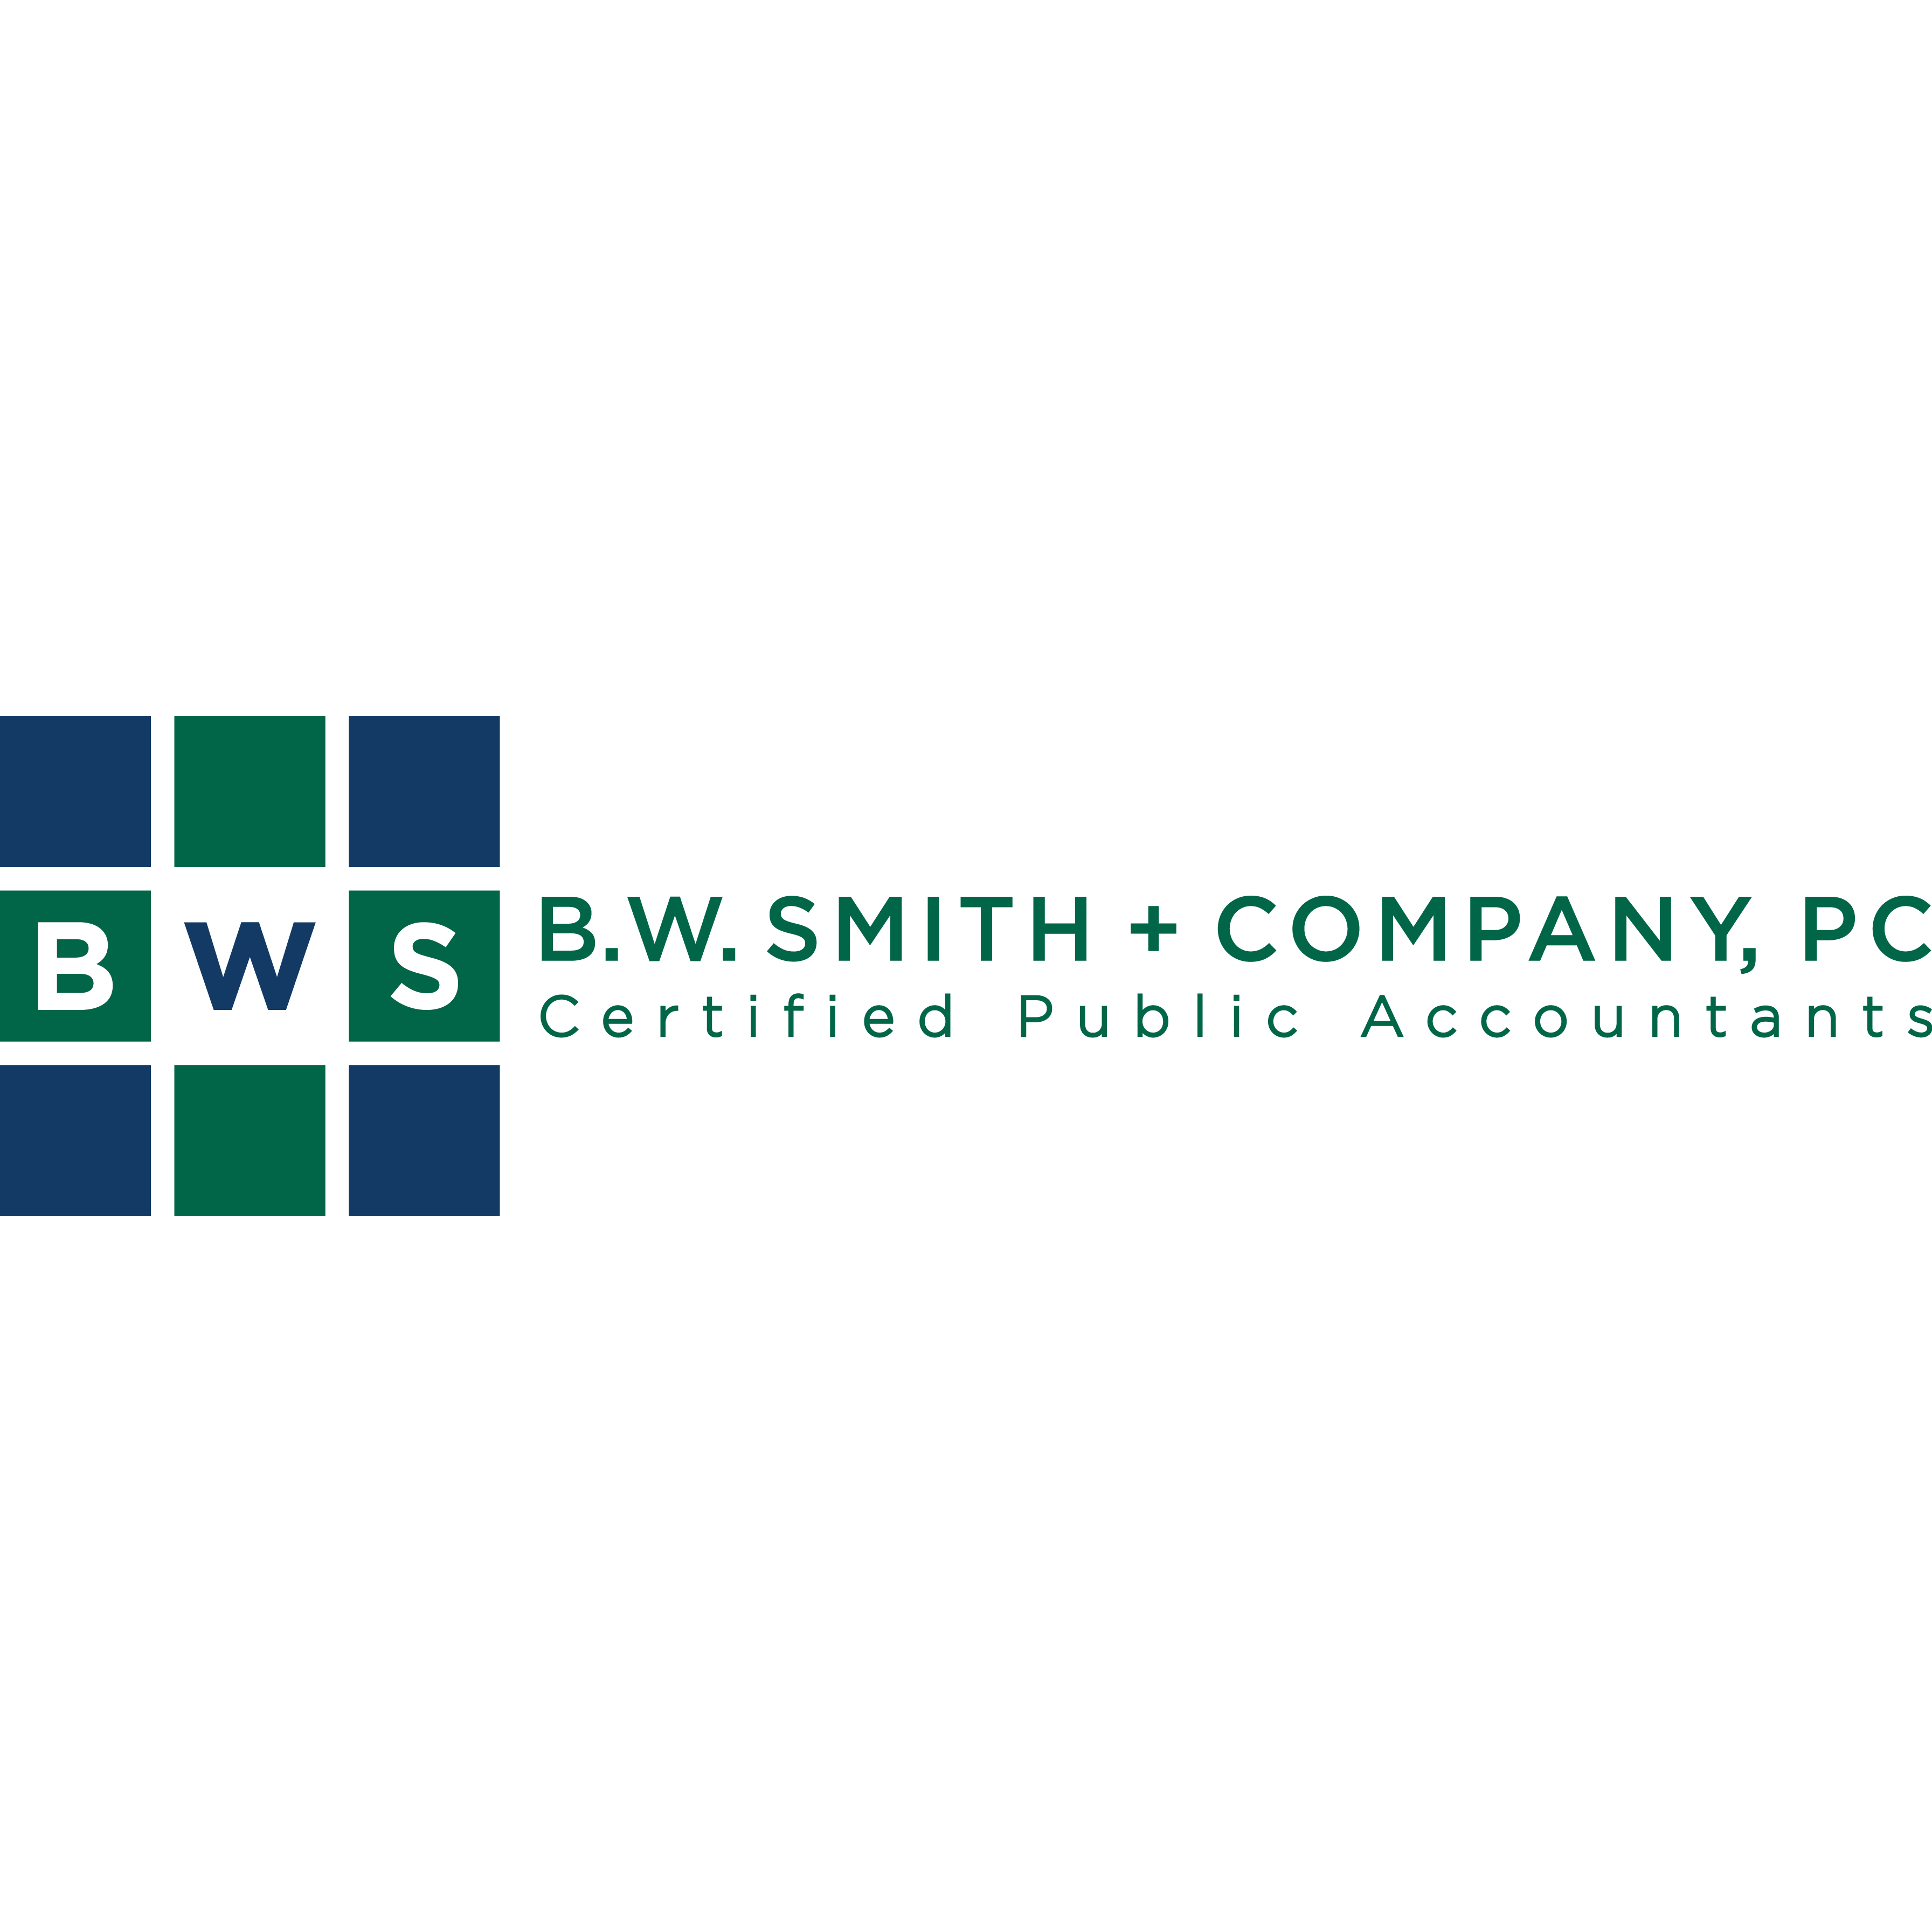 B W Smith + Company, PC, CPAs